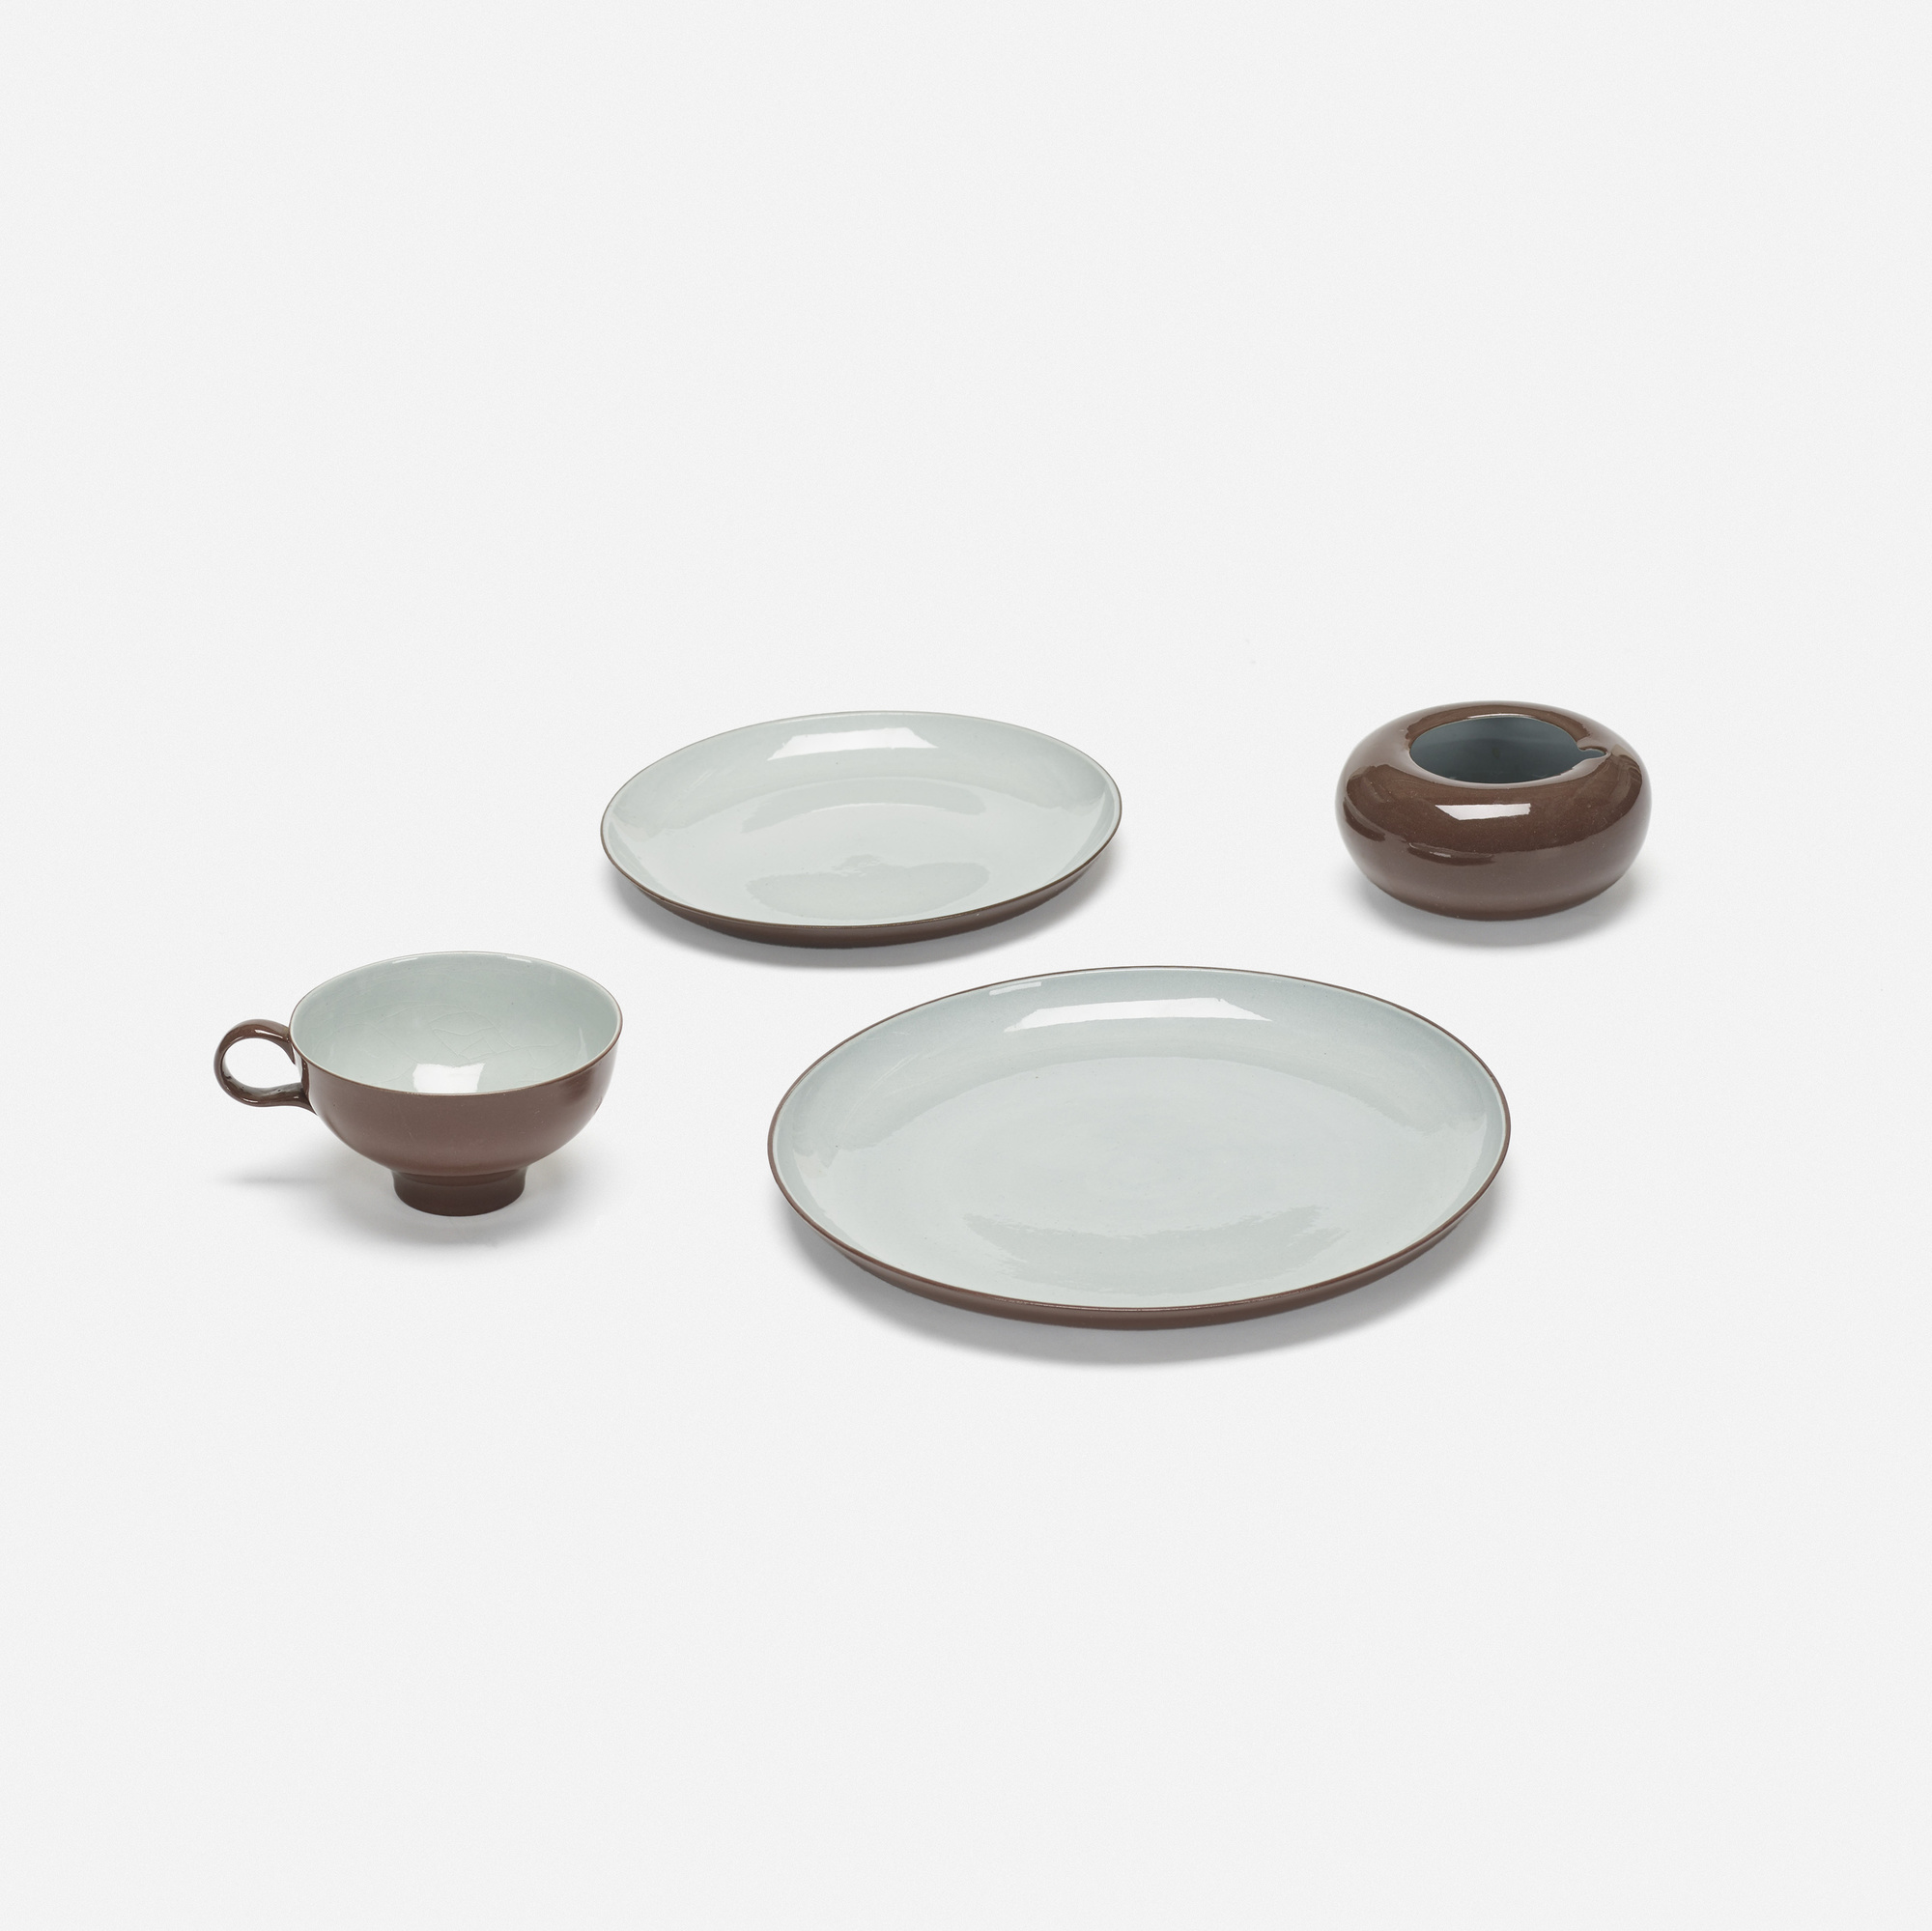 333: Eva Zeisel / collection of tableware (1 of 3)